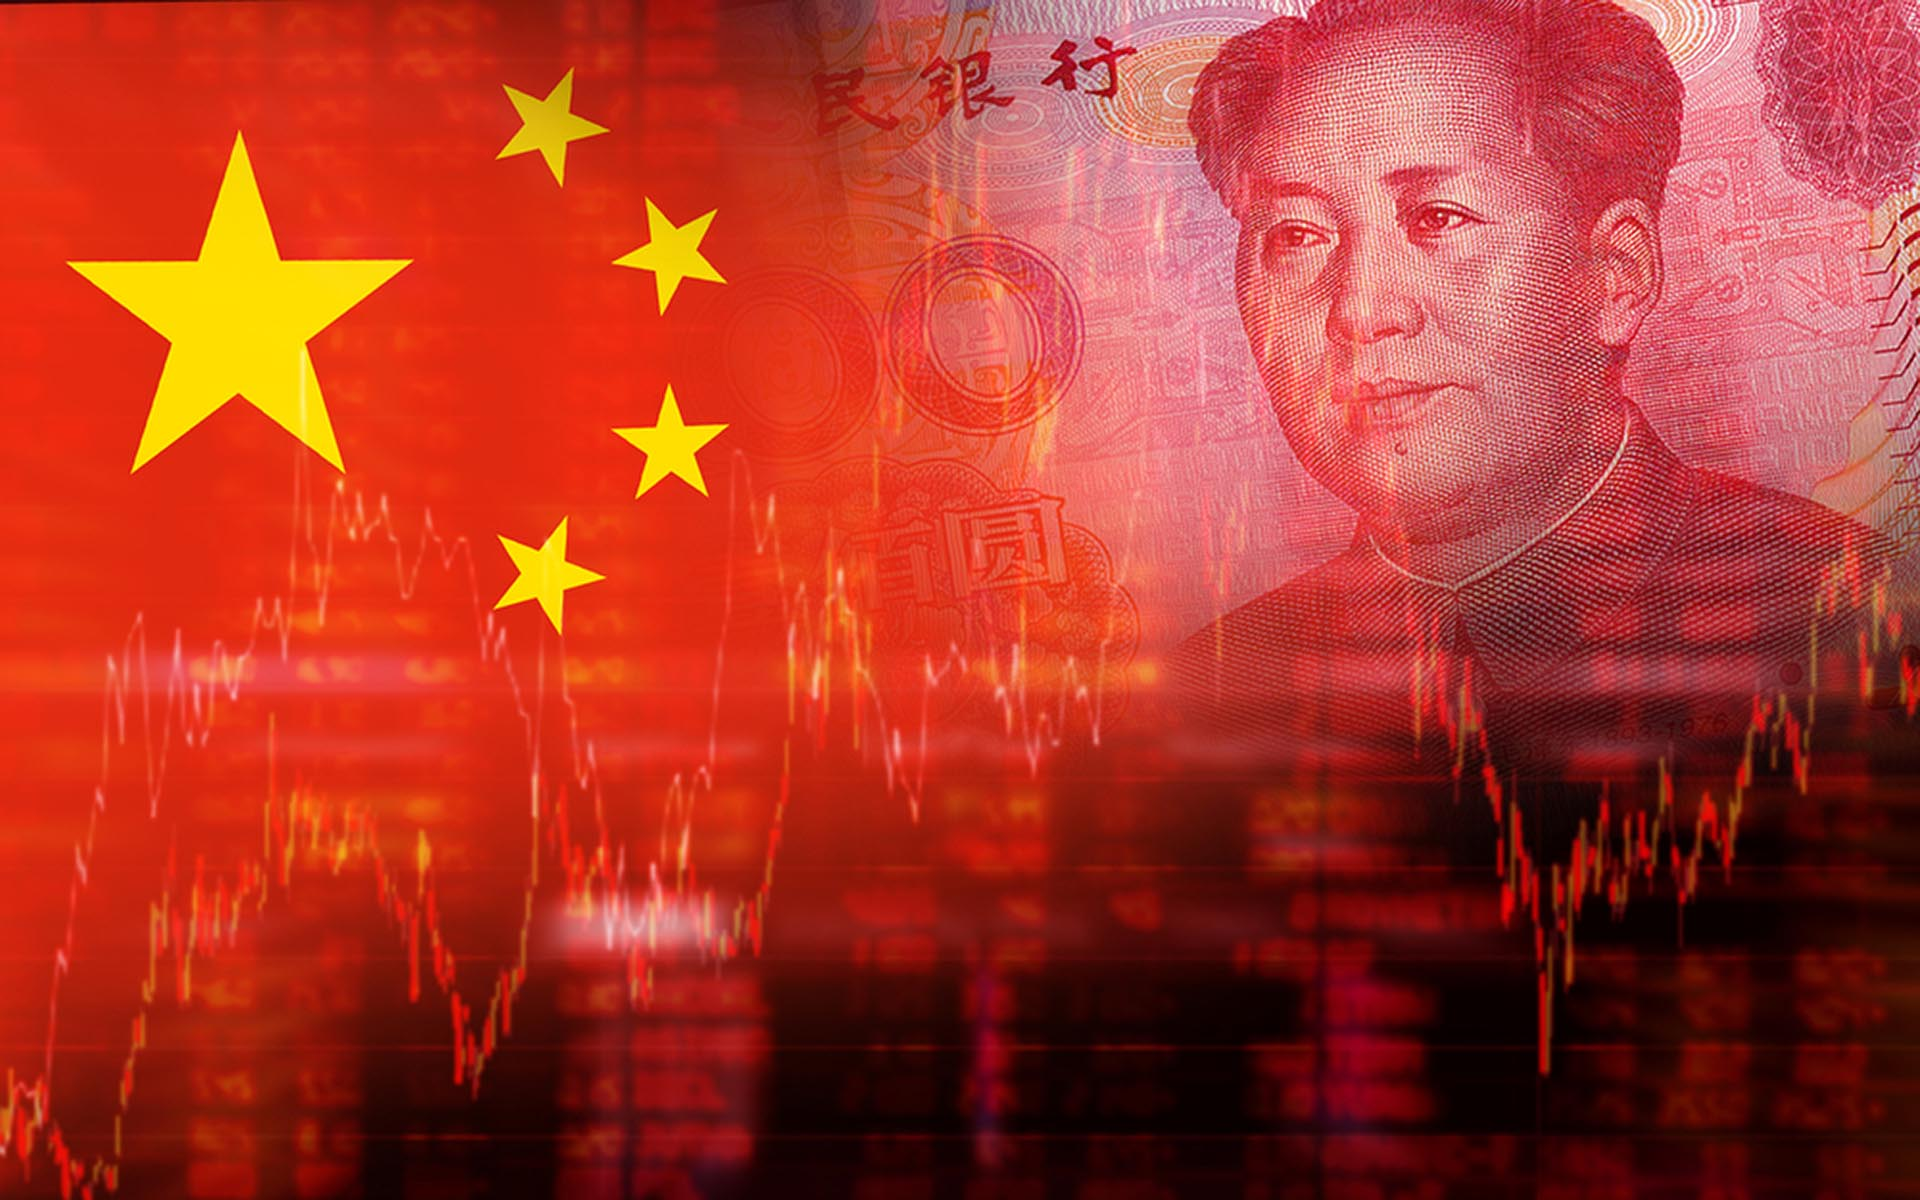 Bitcoin, Ethereum, all cryptocurrencies down substantially post China heavy hand report